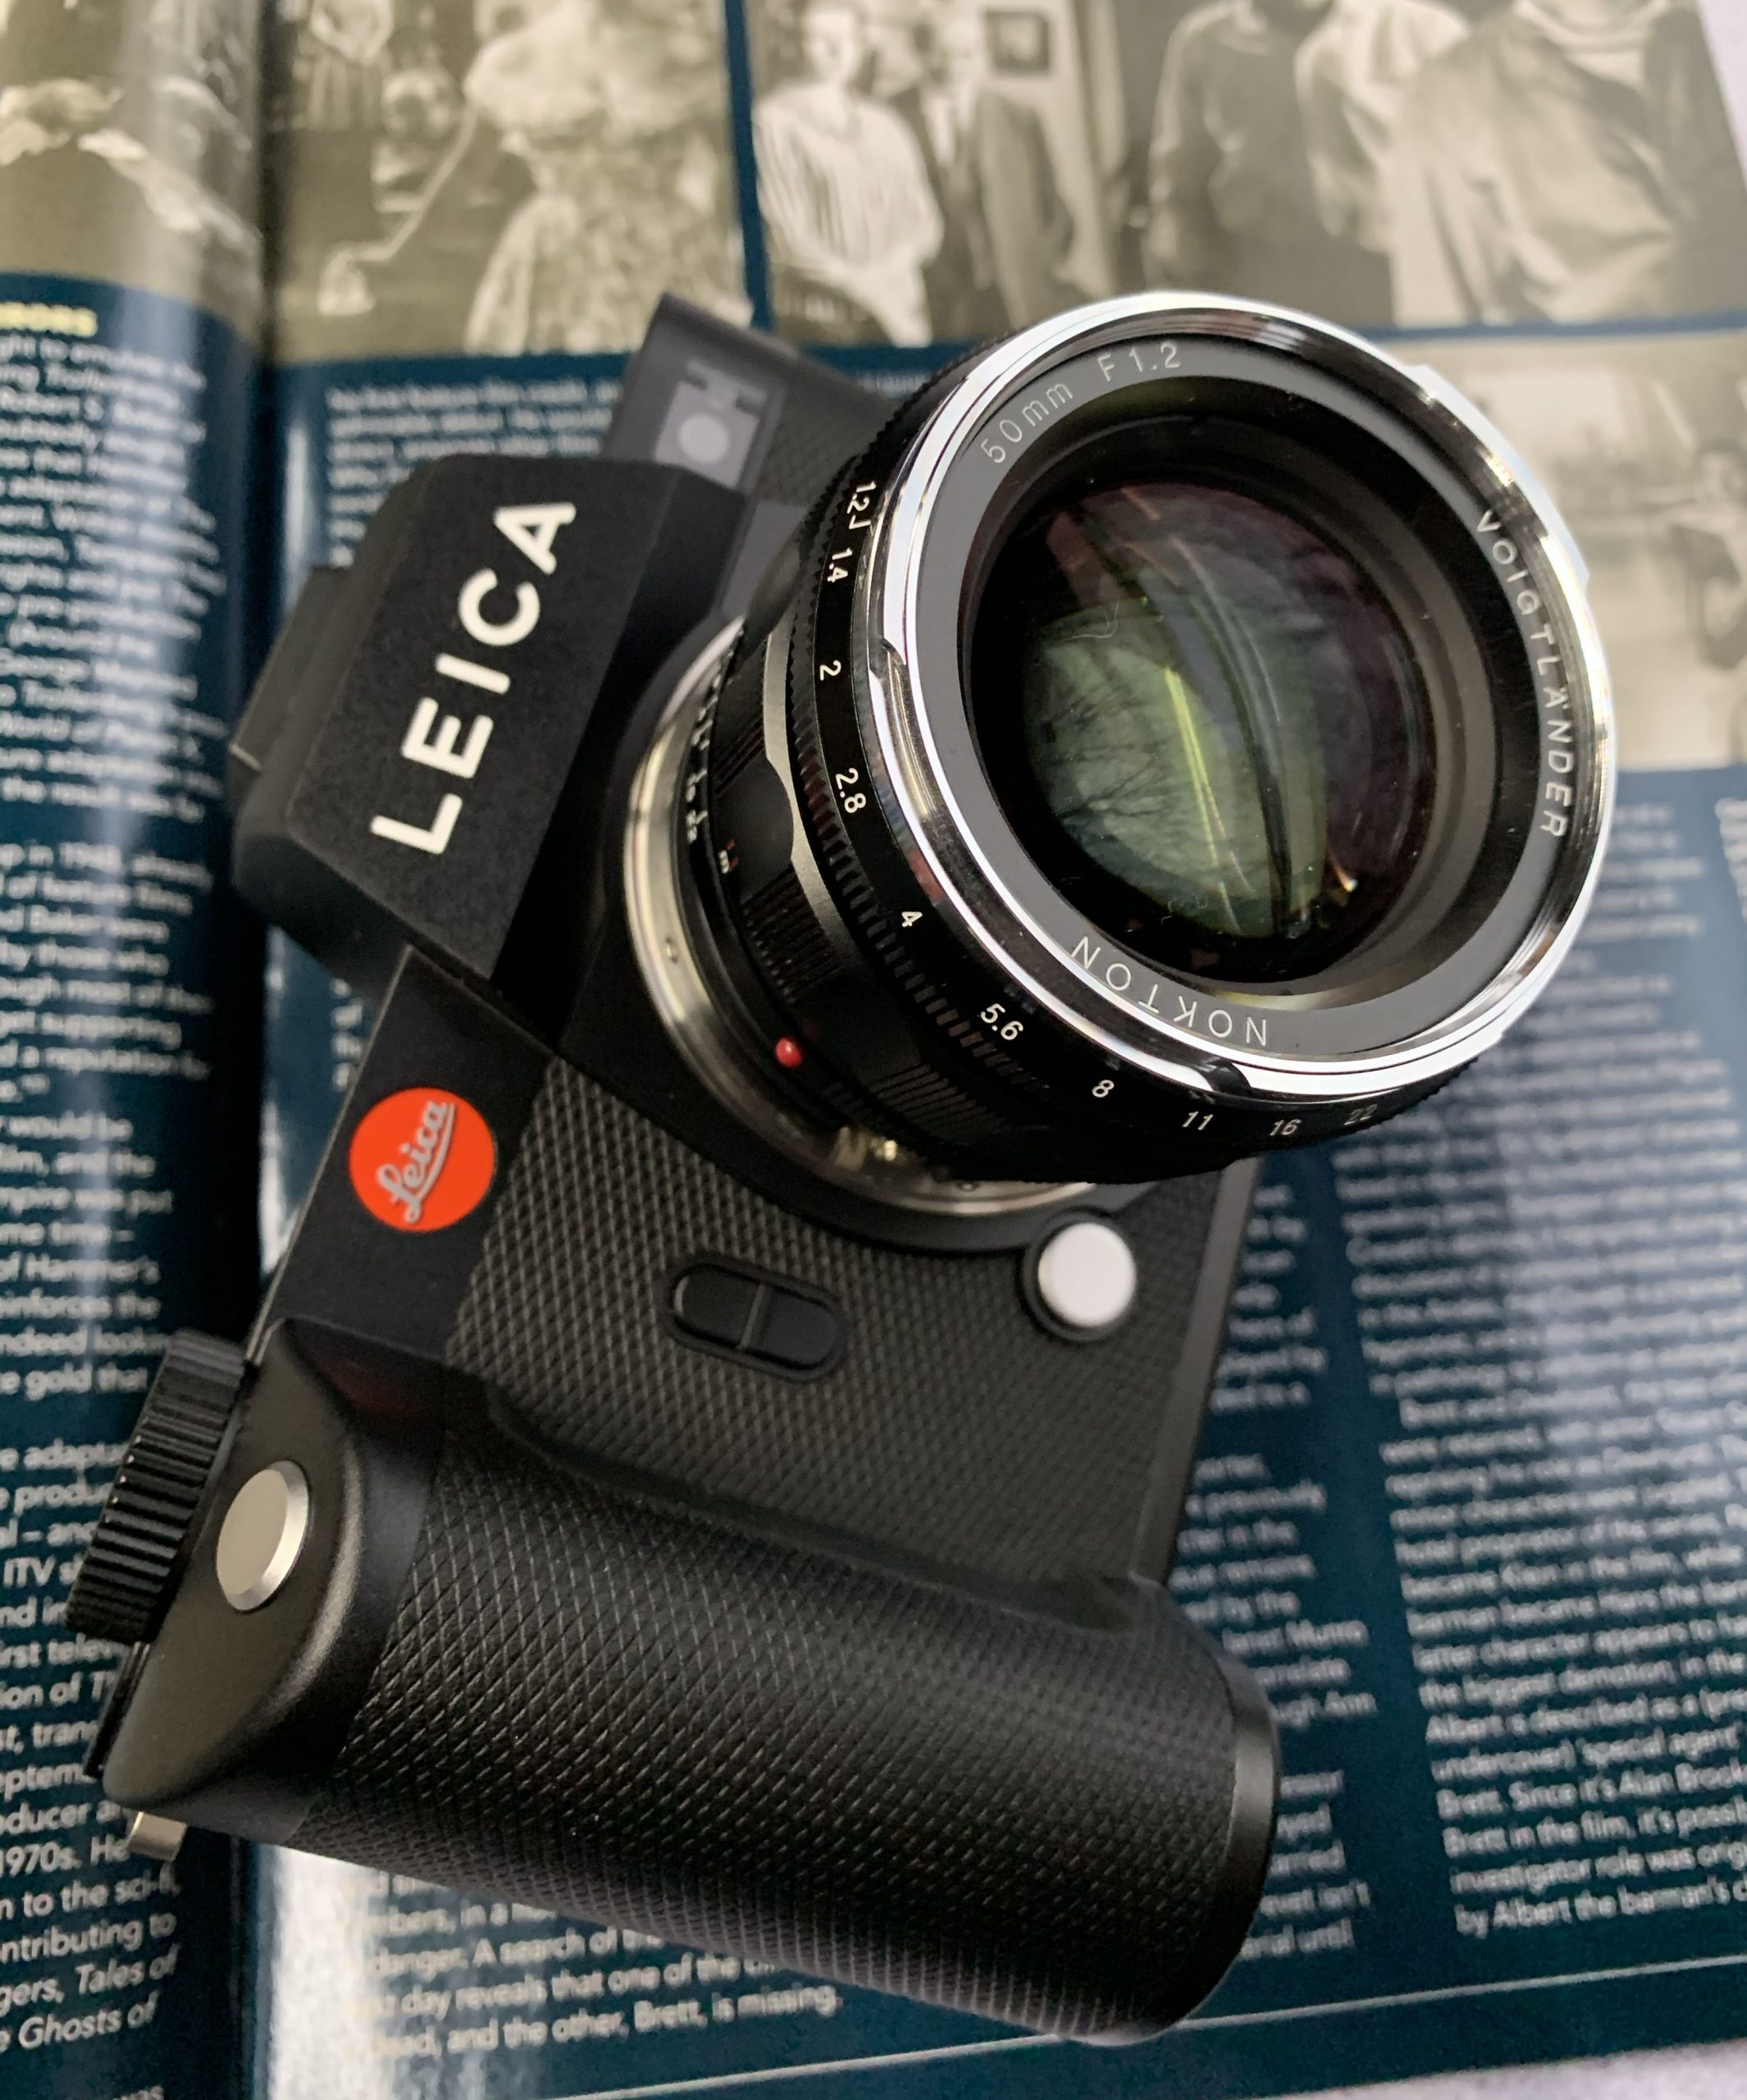 Leica SL2 - review coming soon